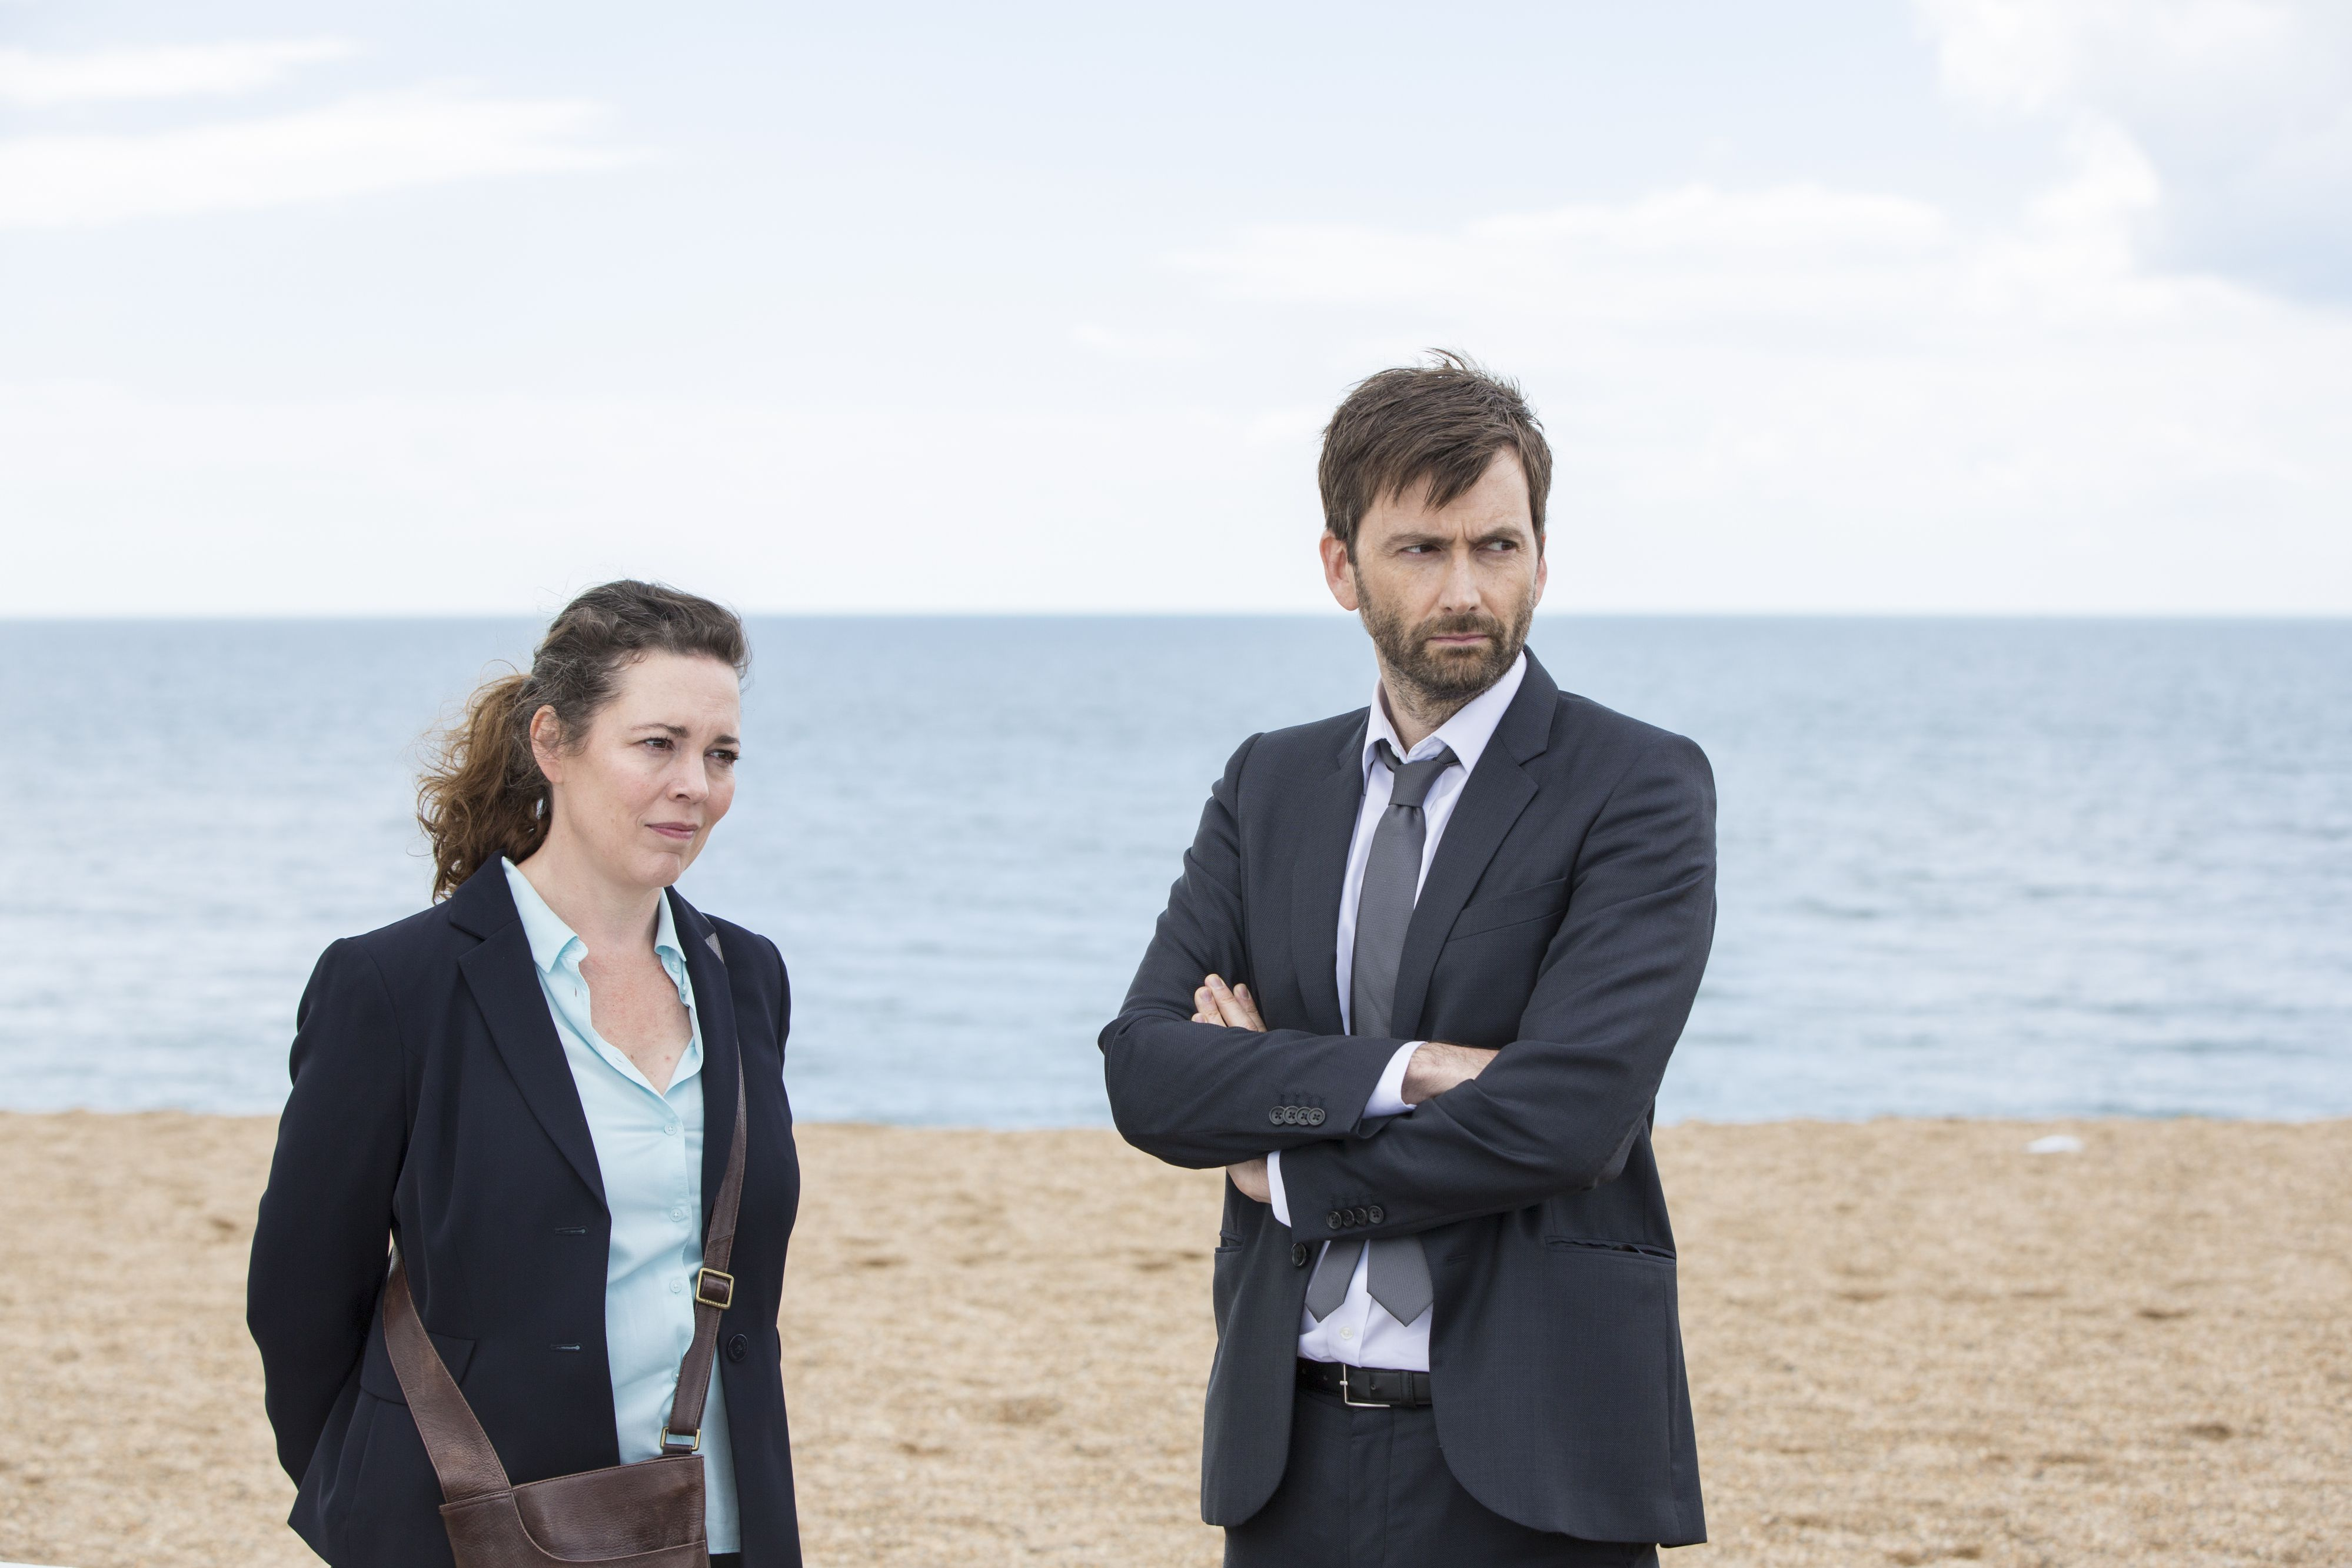 Broadchurch episode 4 – Who attacked Trish? Here are all the clues you might have missed